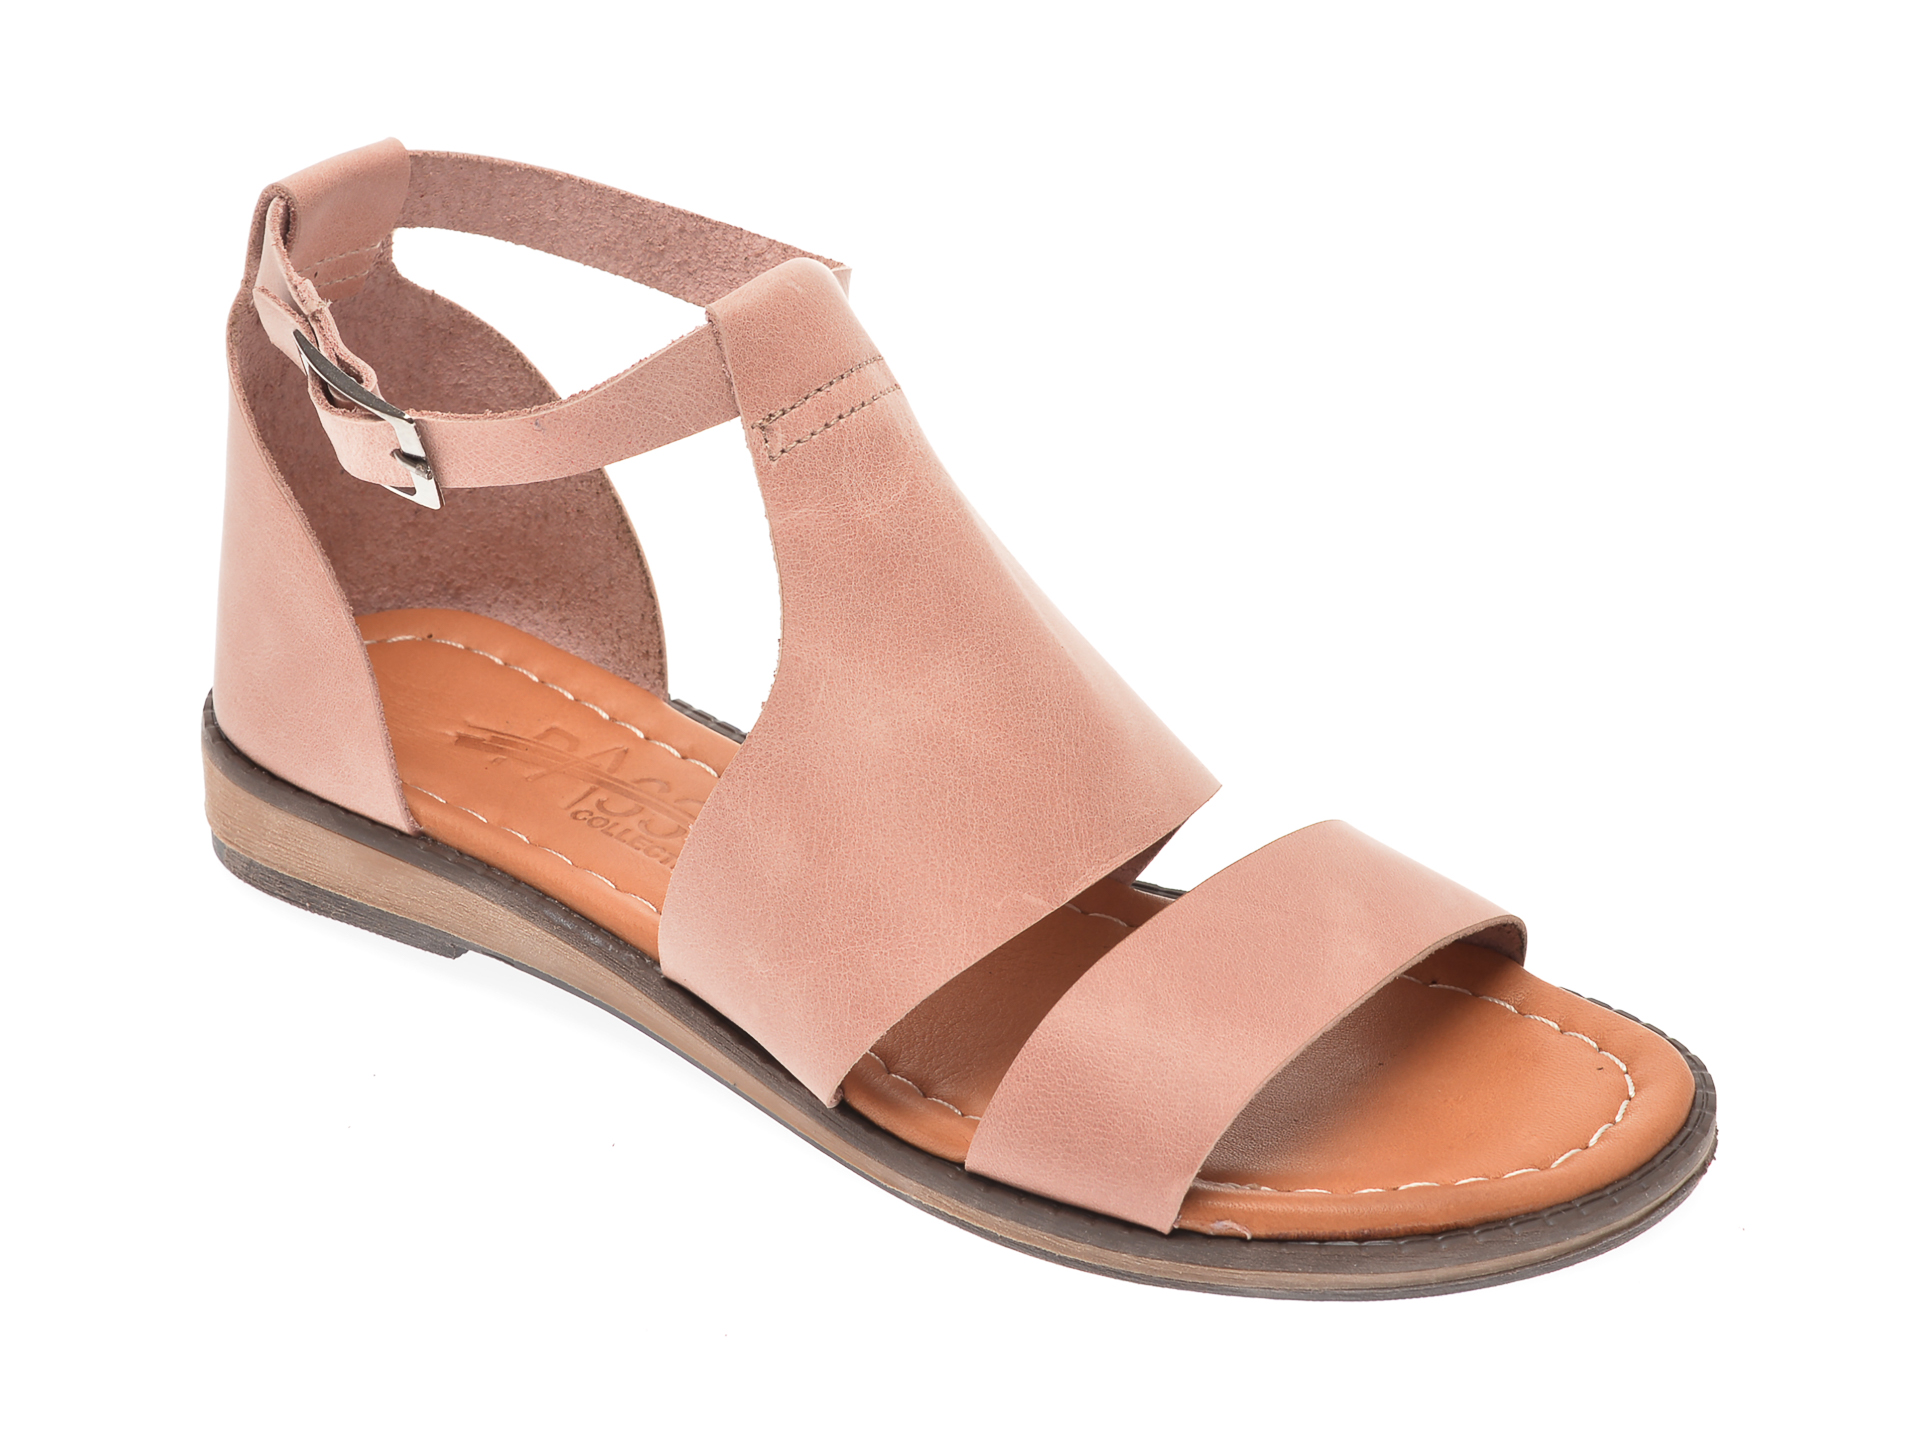 Sandale PASS COLLECTION nude, 1004K, din piele naturala